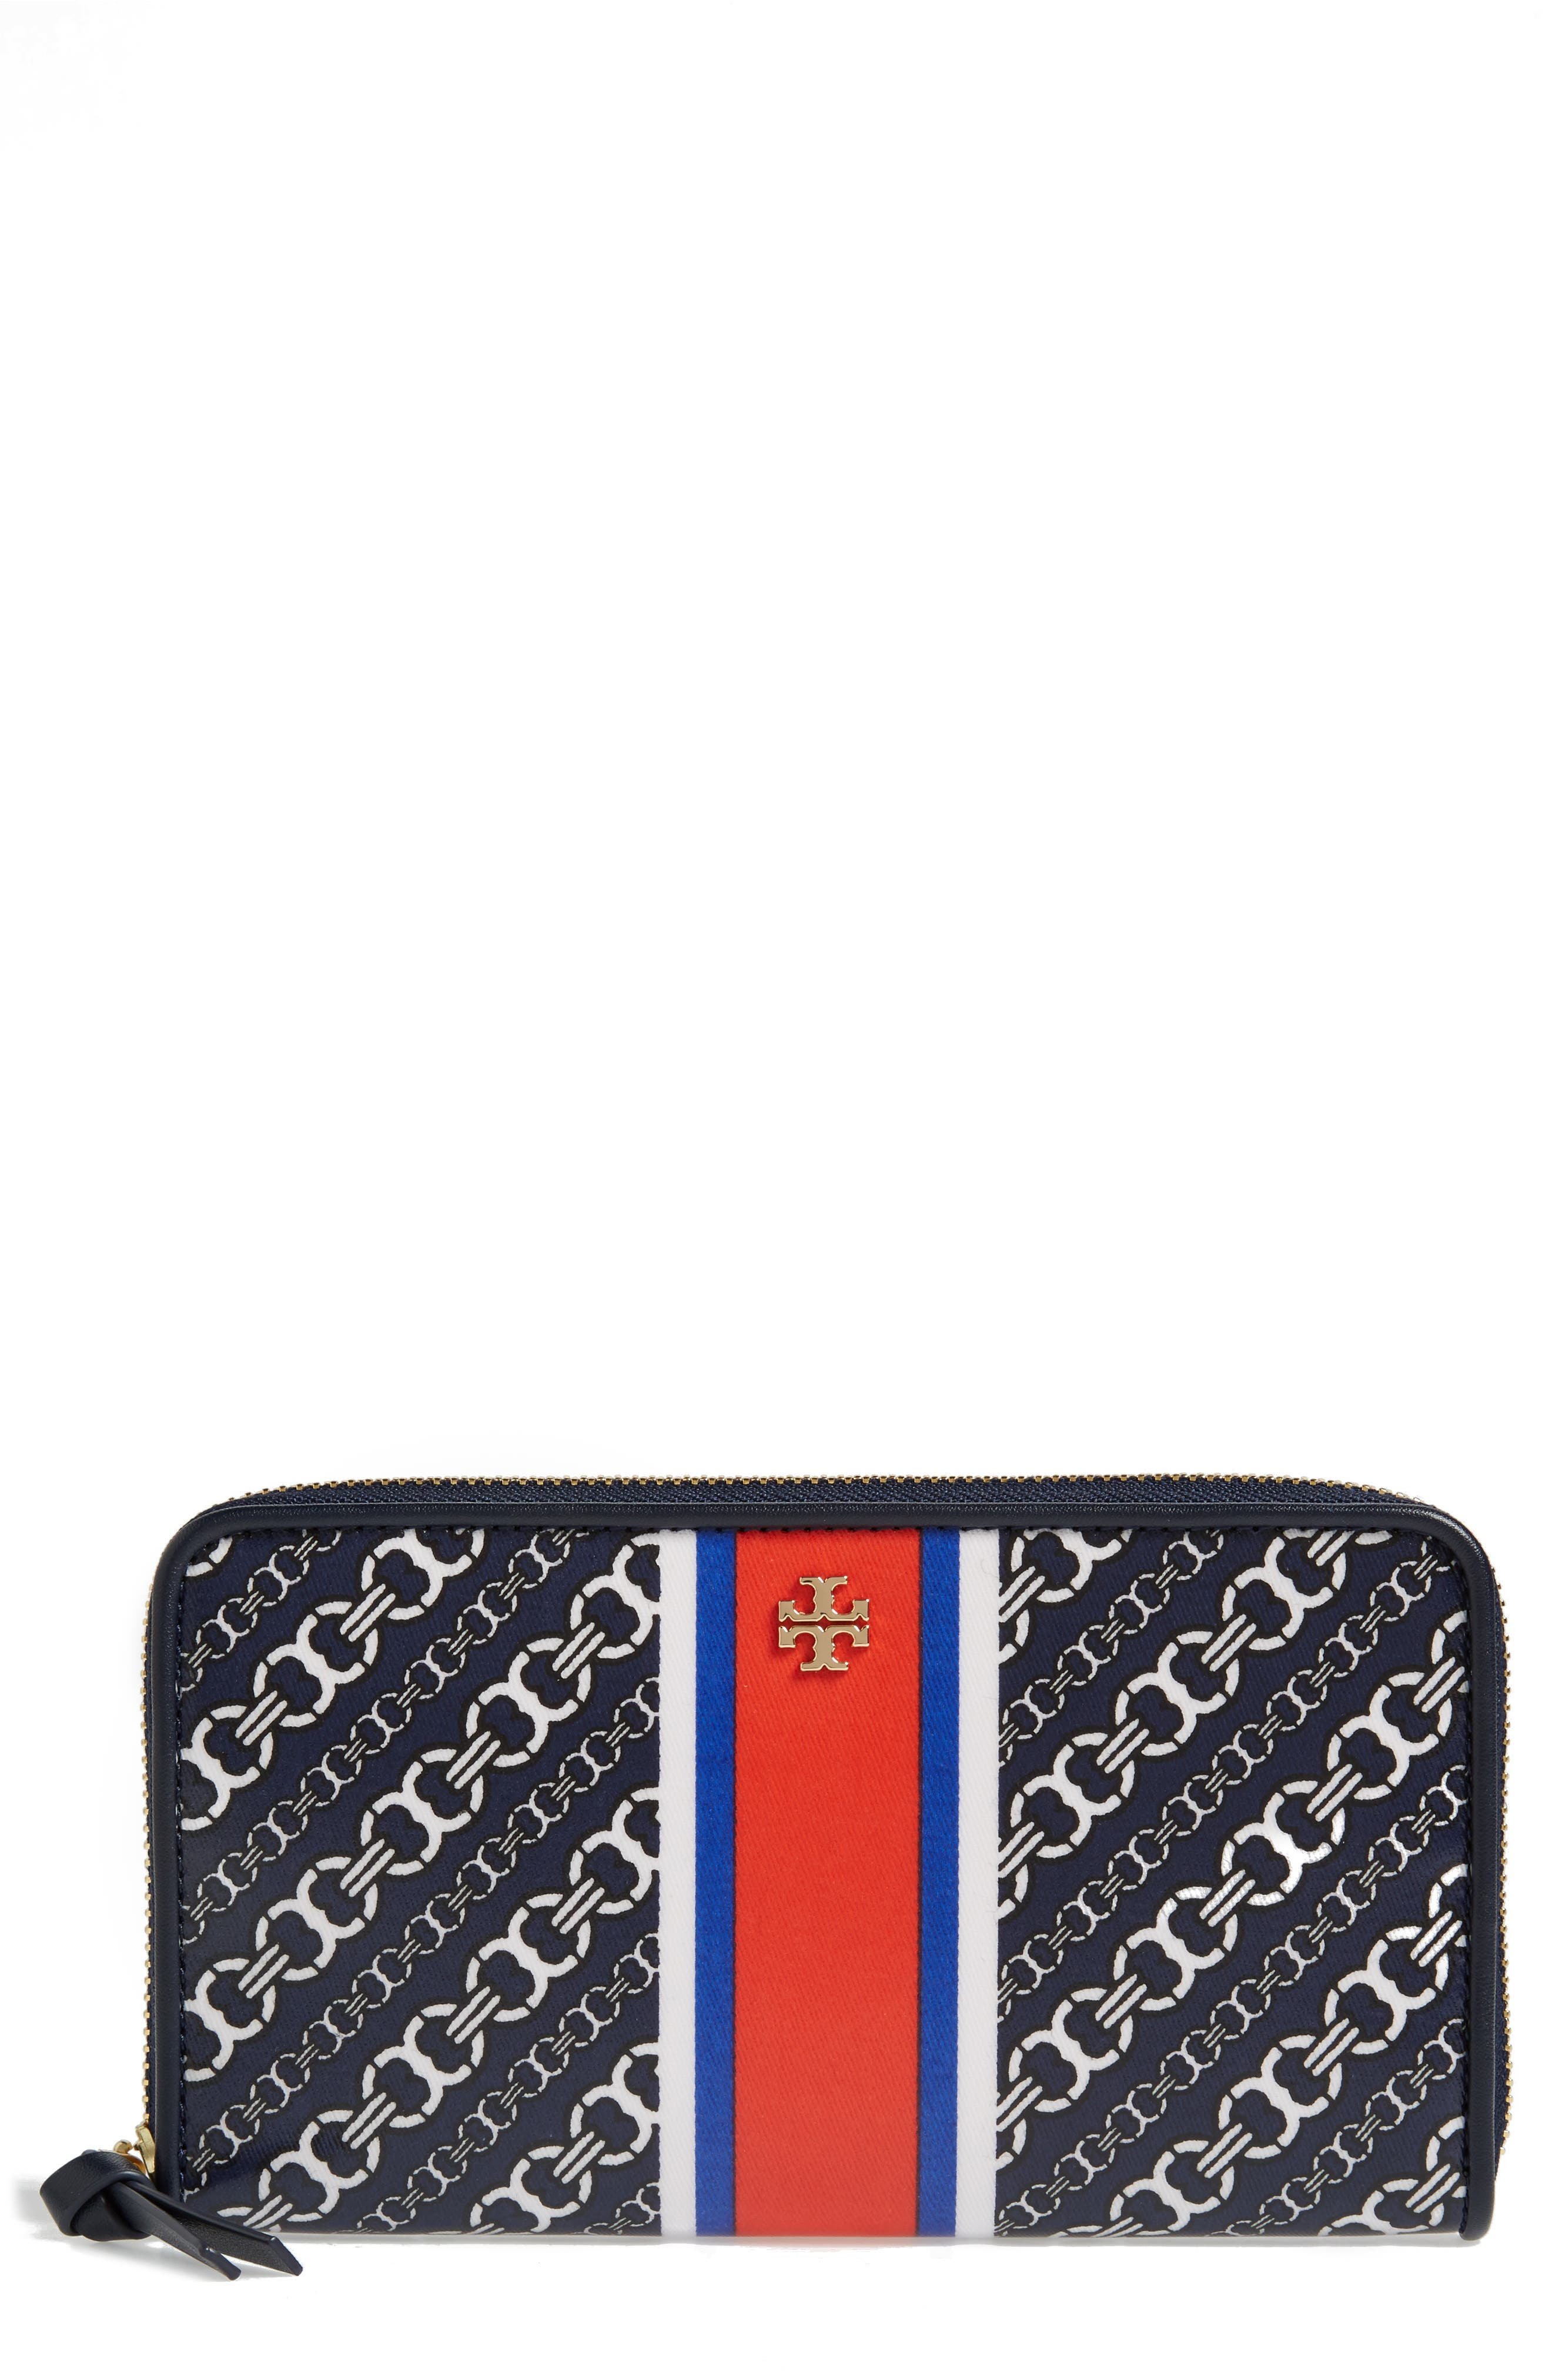 TORY BURCH Gemini Link Coated Canvas Continental Wallet